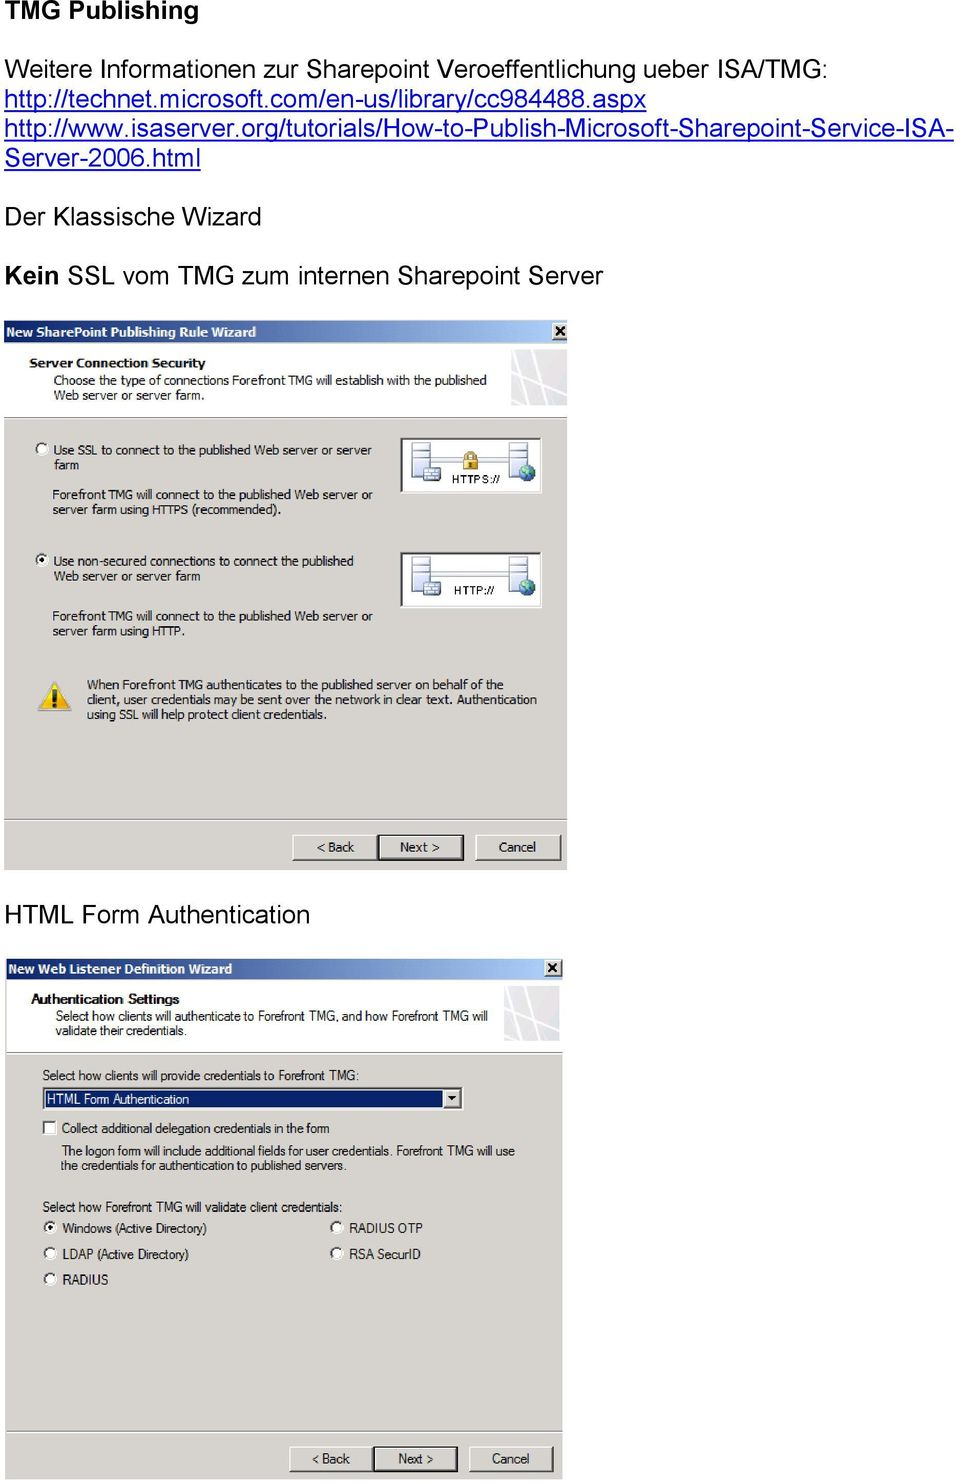 org/tutorials/how-to-publish-microsoft-sharepoint-service-isa- Server-2006.